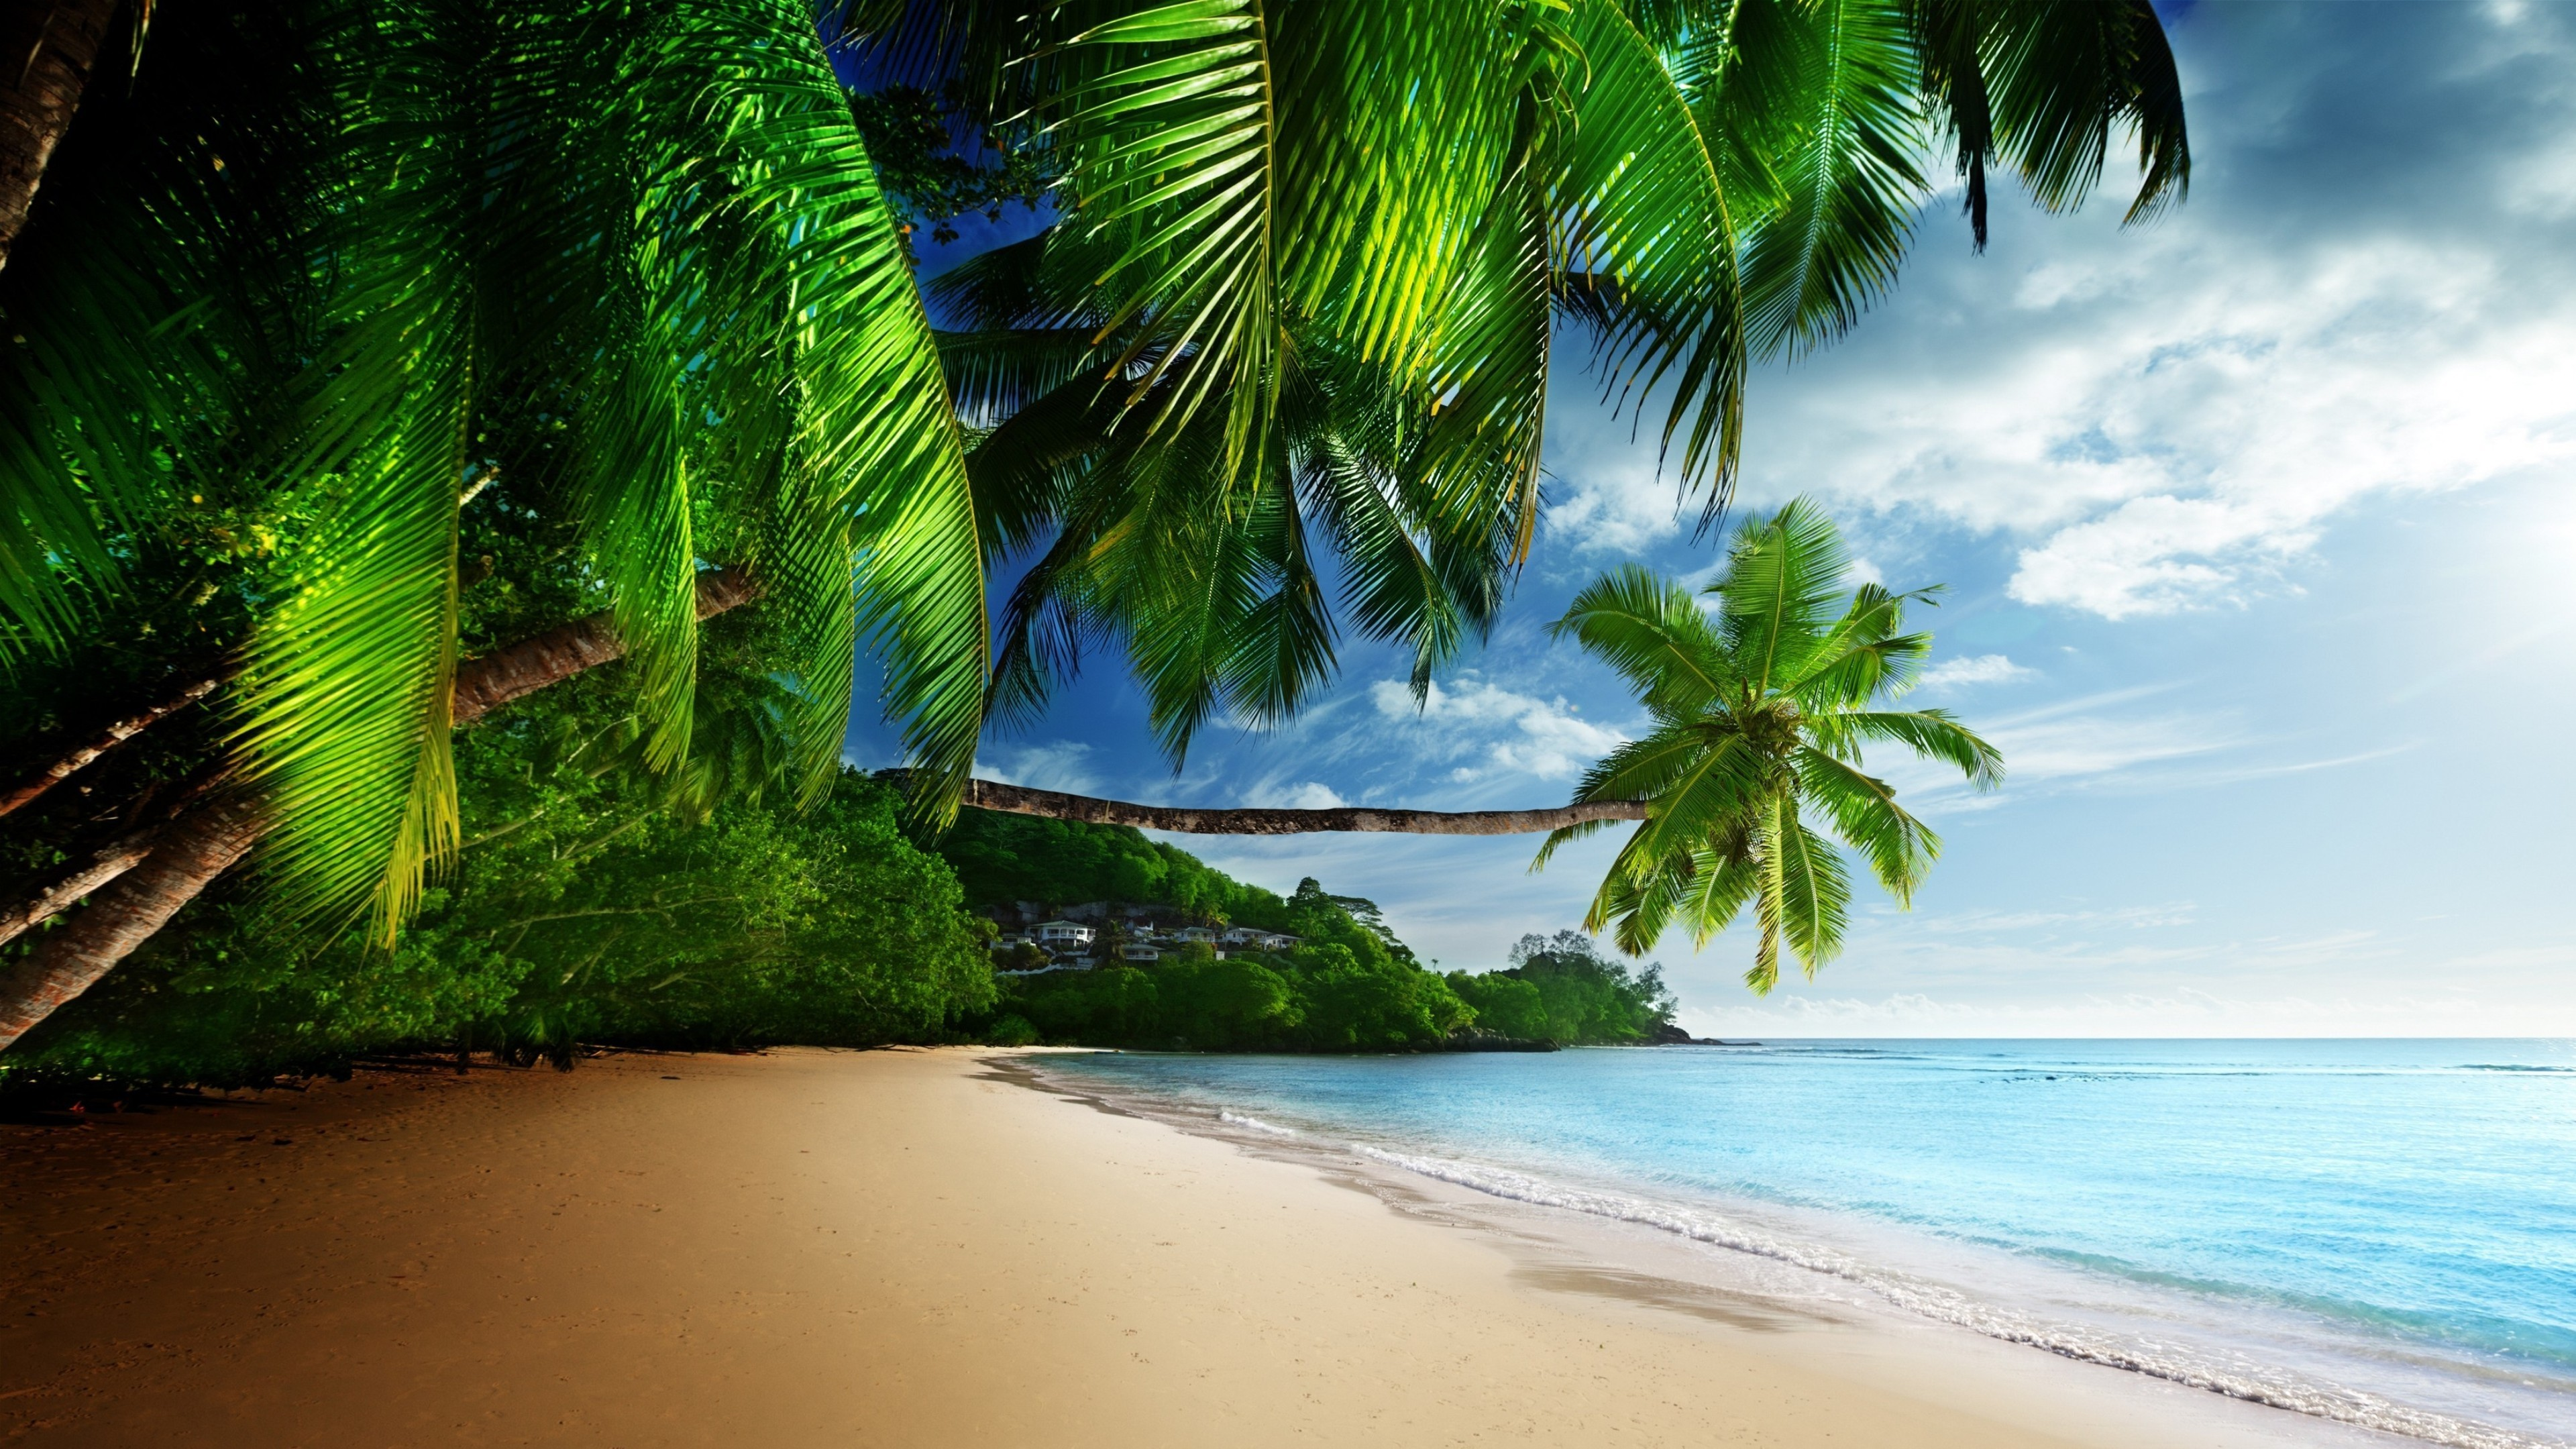 Tropical Beach 4K Ultra HD Wallpaper 3840x2160